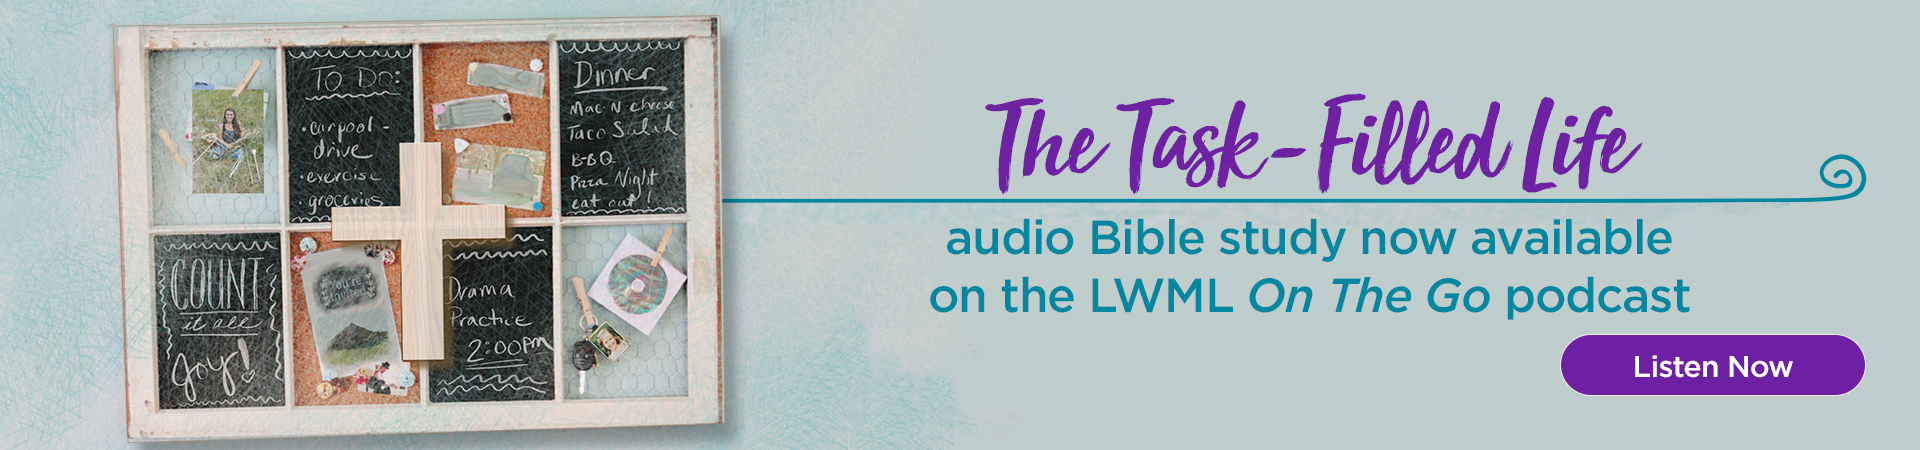 Listen to The Task-Filled Life Bible Study on the LWML On The Go podcast.